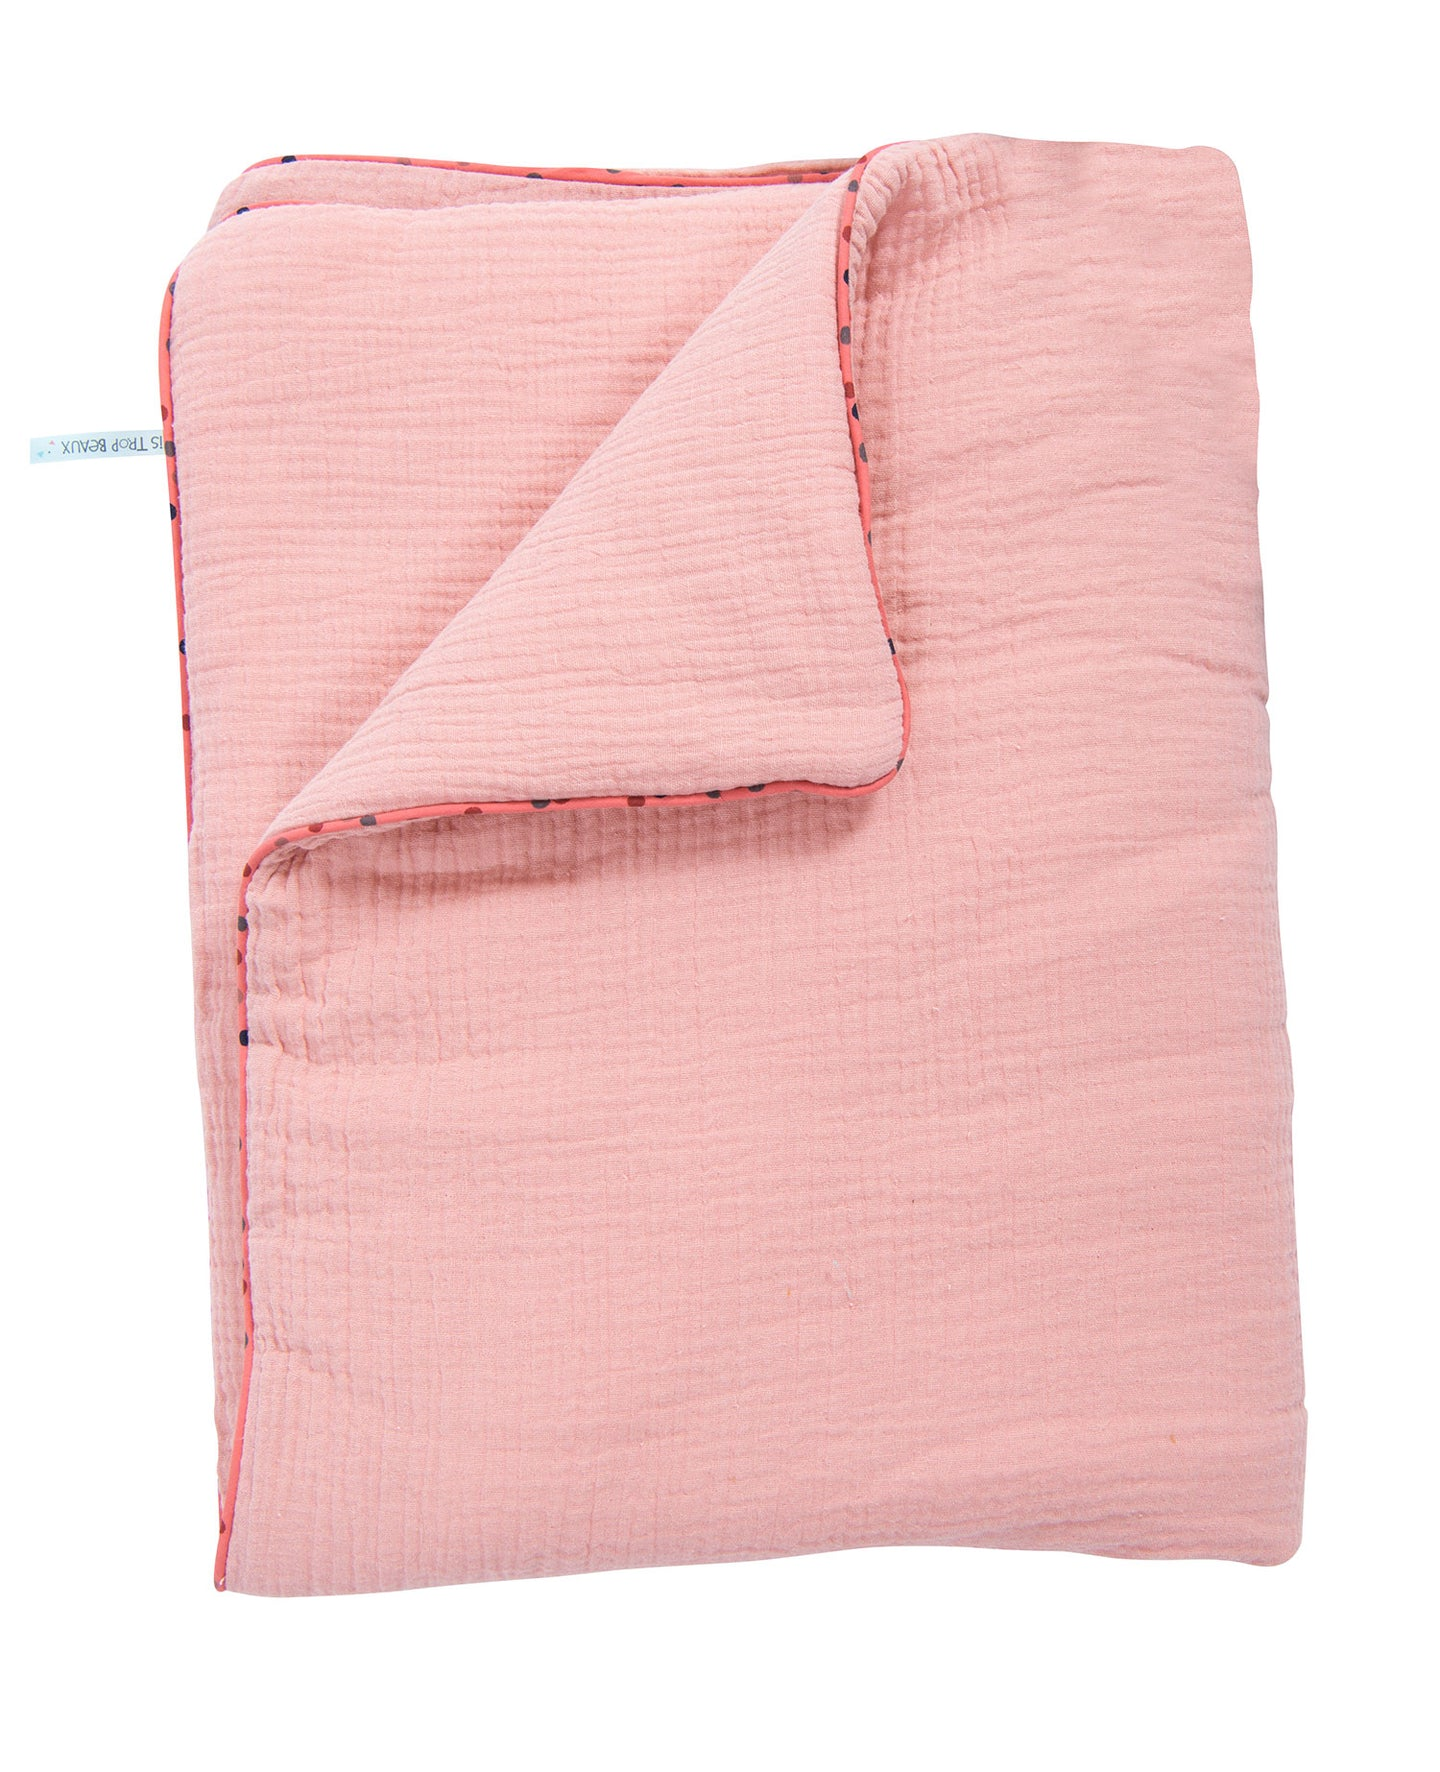 COTTON BLANKET (PINK)